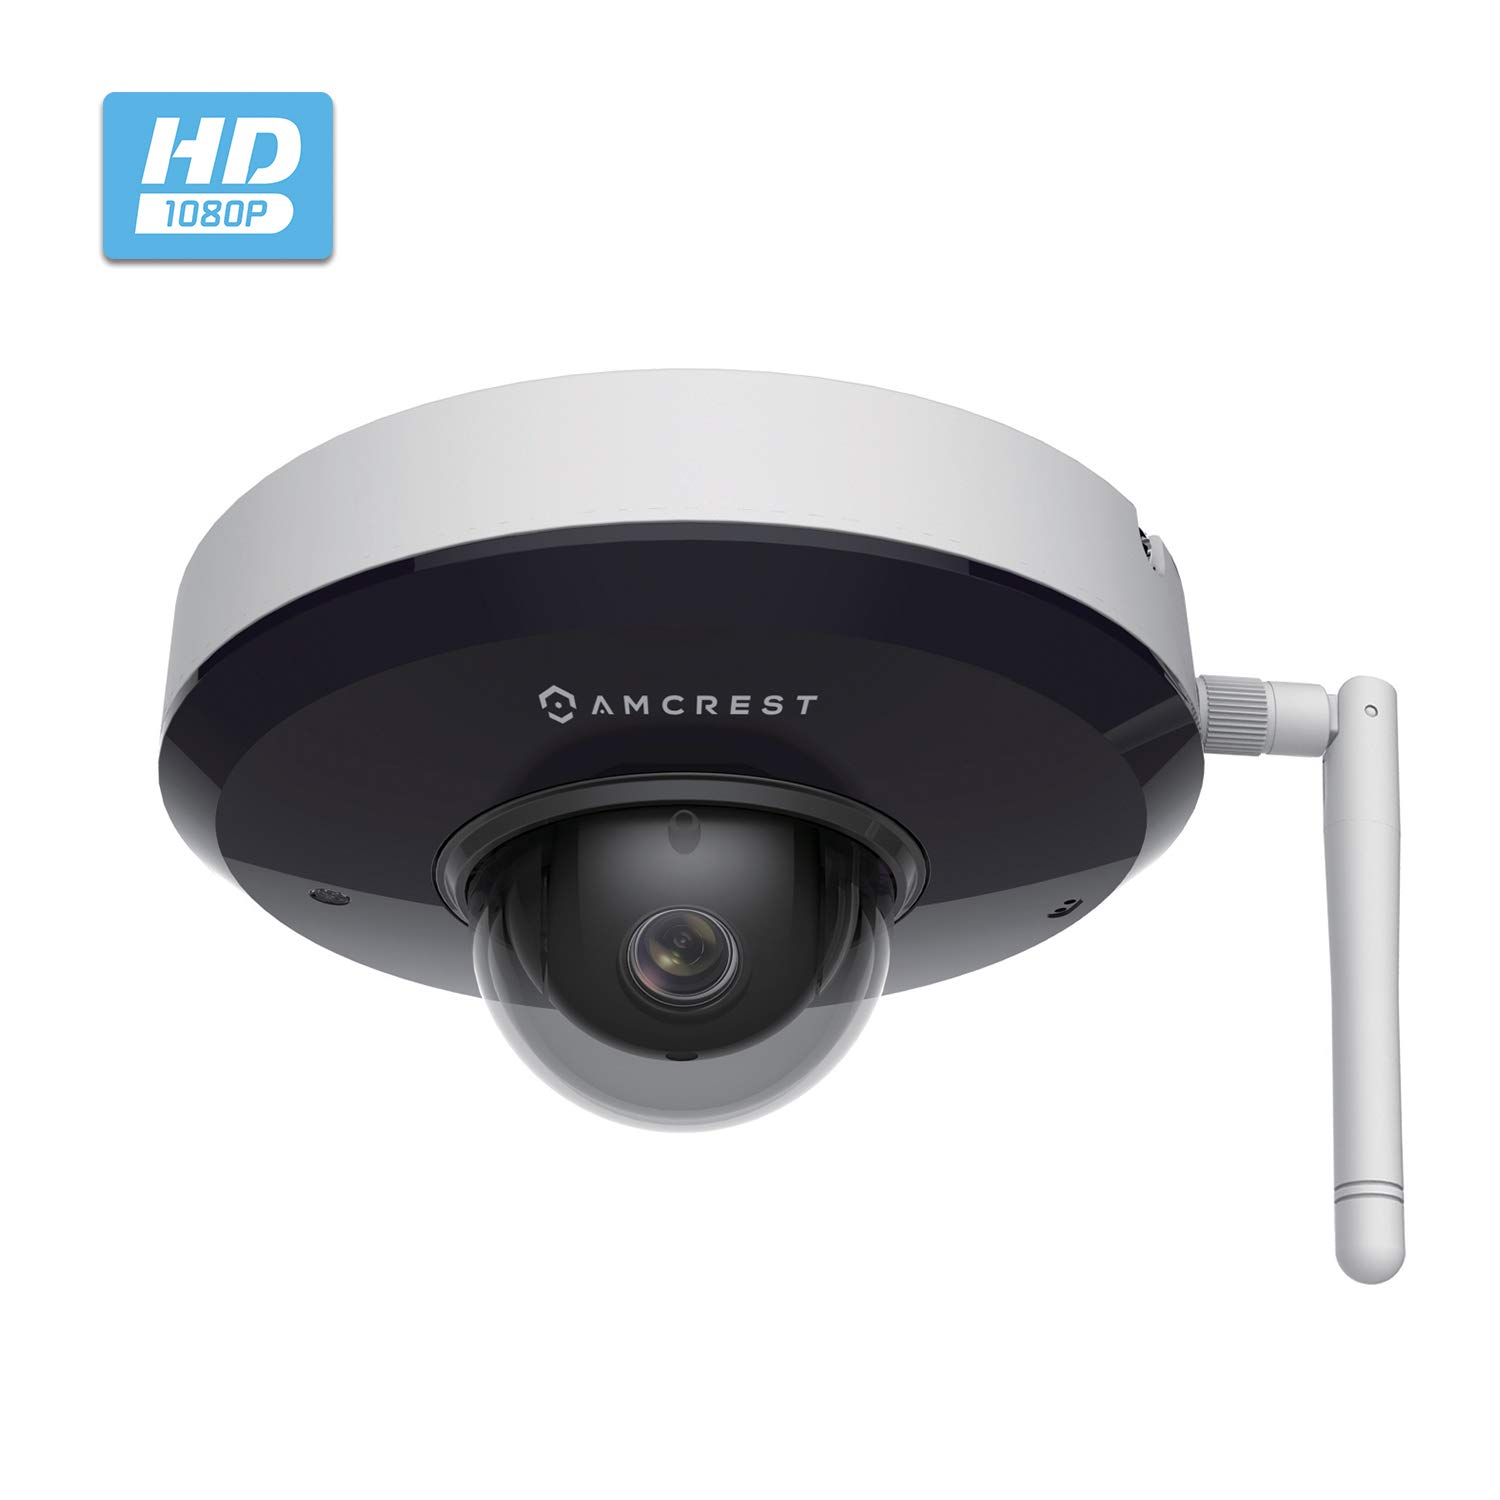 Amcrest ProHD 1080P PTZ WiFi Camera, 2MP Outdoor Vandal Dome IP Camera (3X Optical Zoom) IK08 Vandal-Proof, IP66 Weatherproof, Dual Band 5ghz/2.4ghz, 2019 Updated Firmware, Pan/Tilt IP2M-866W (White)